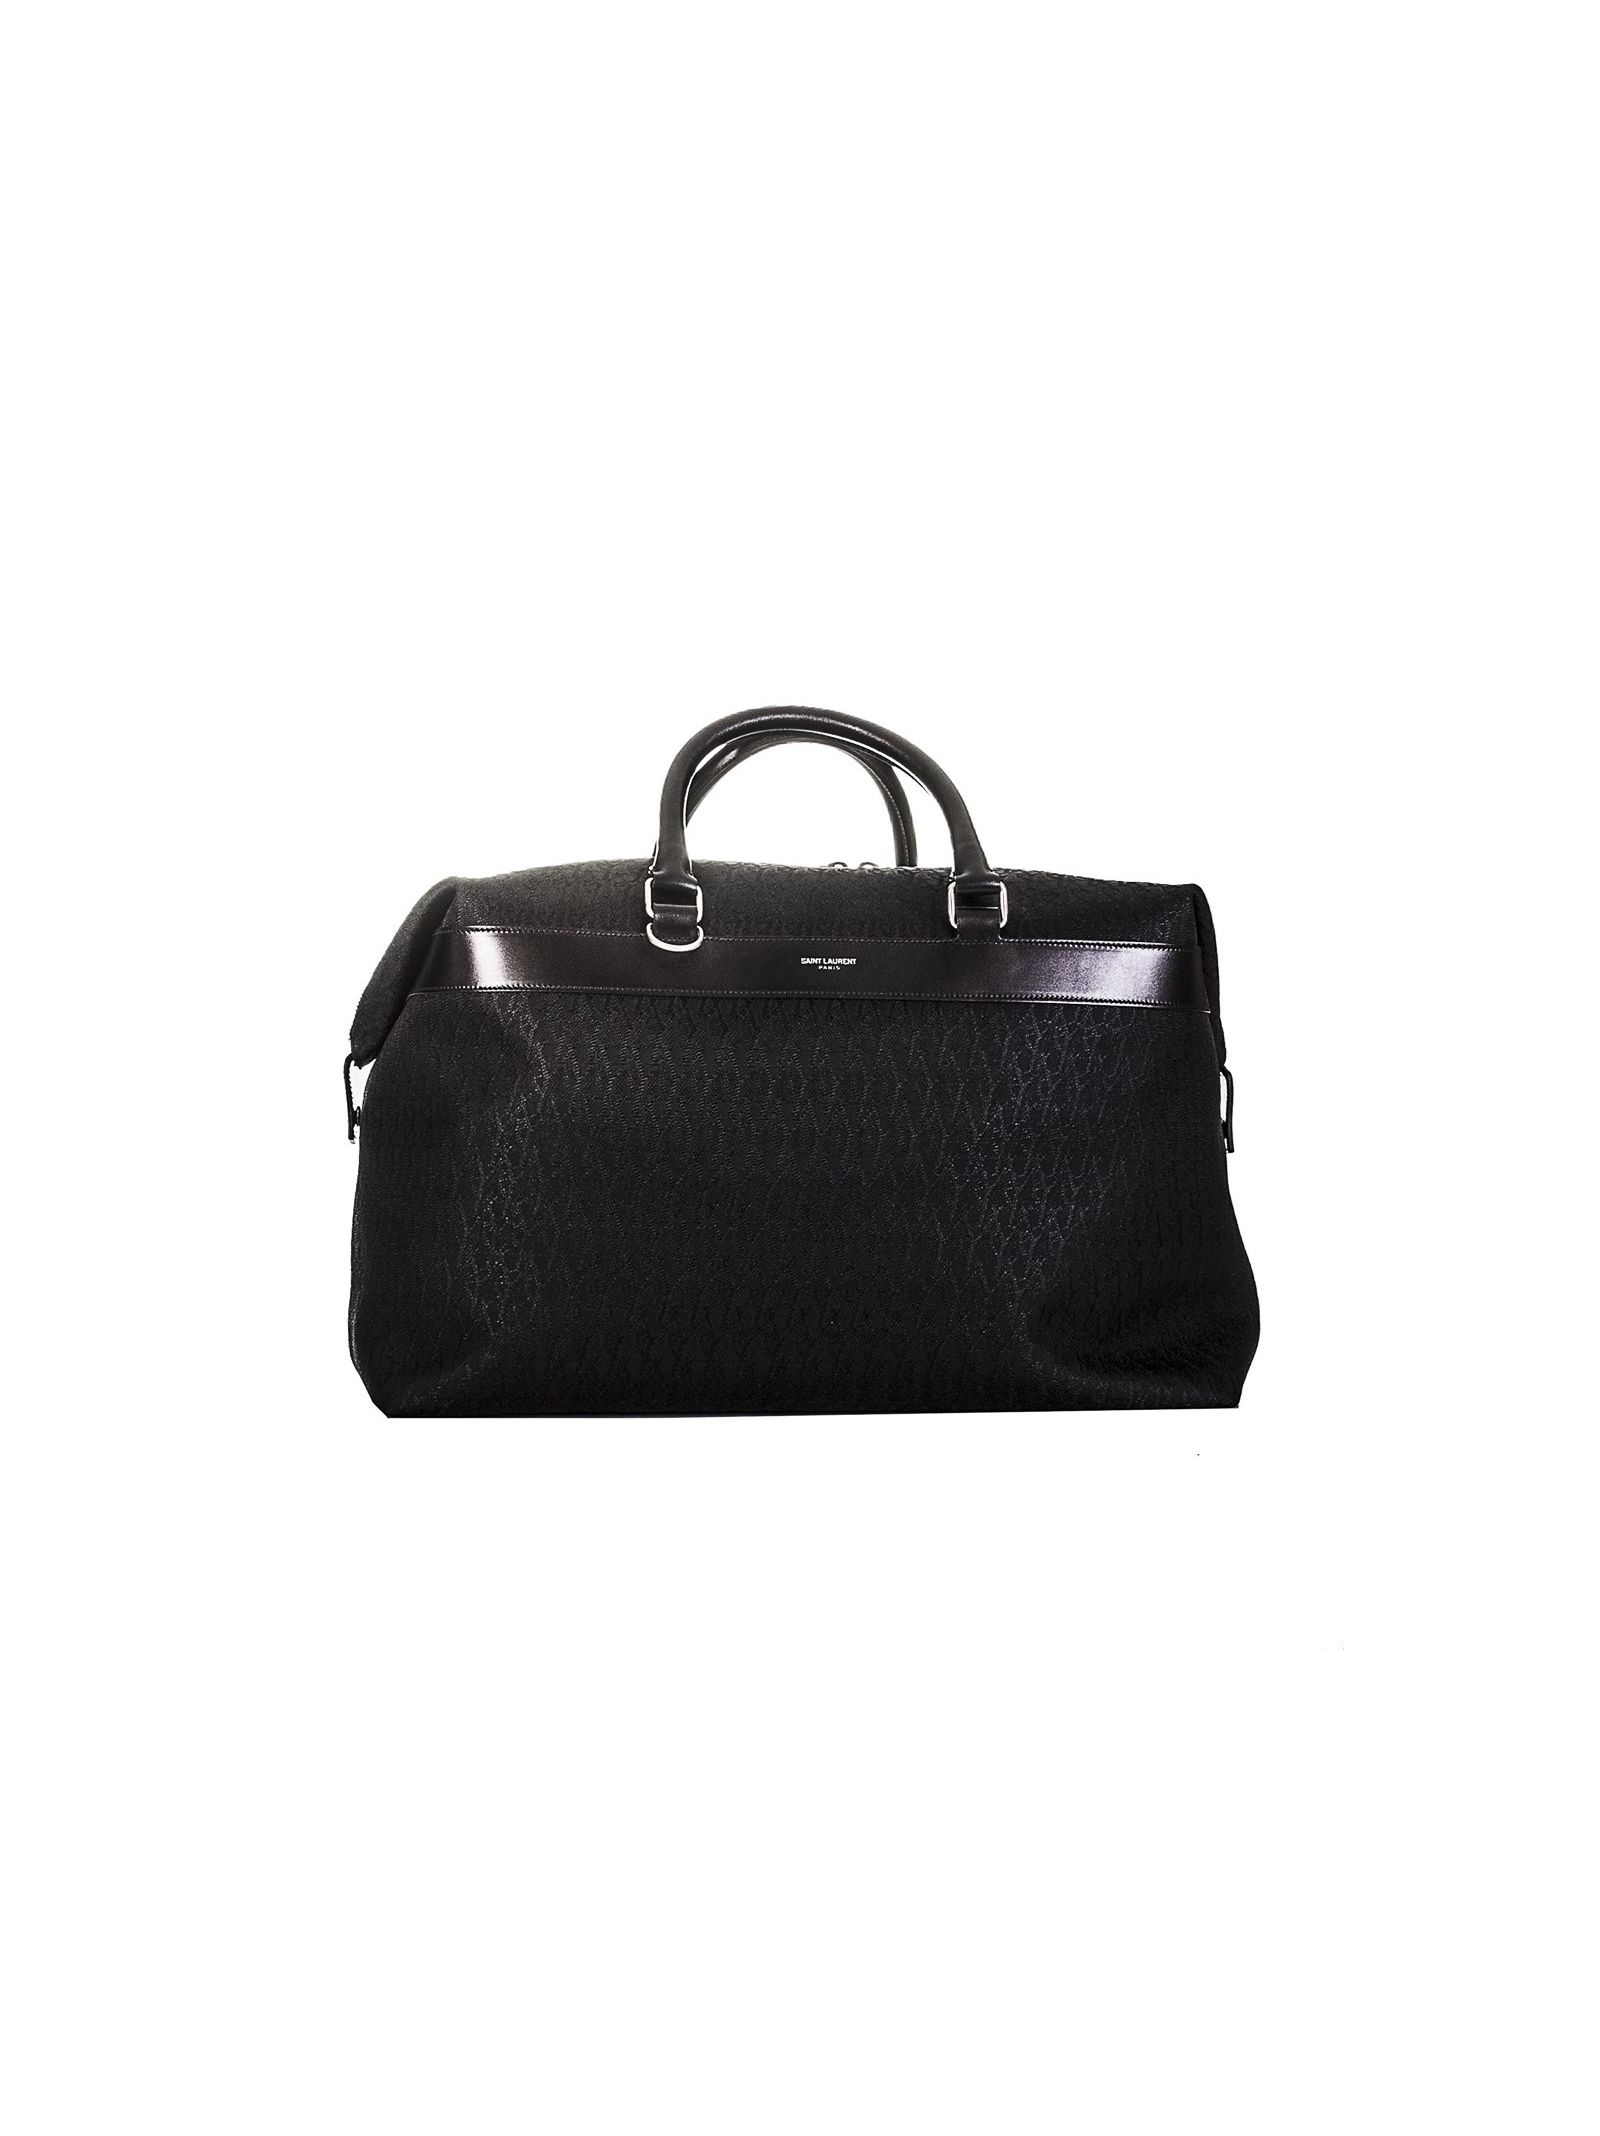 Geantă de damă SAINT LAURENT Black Monogram